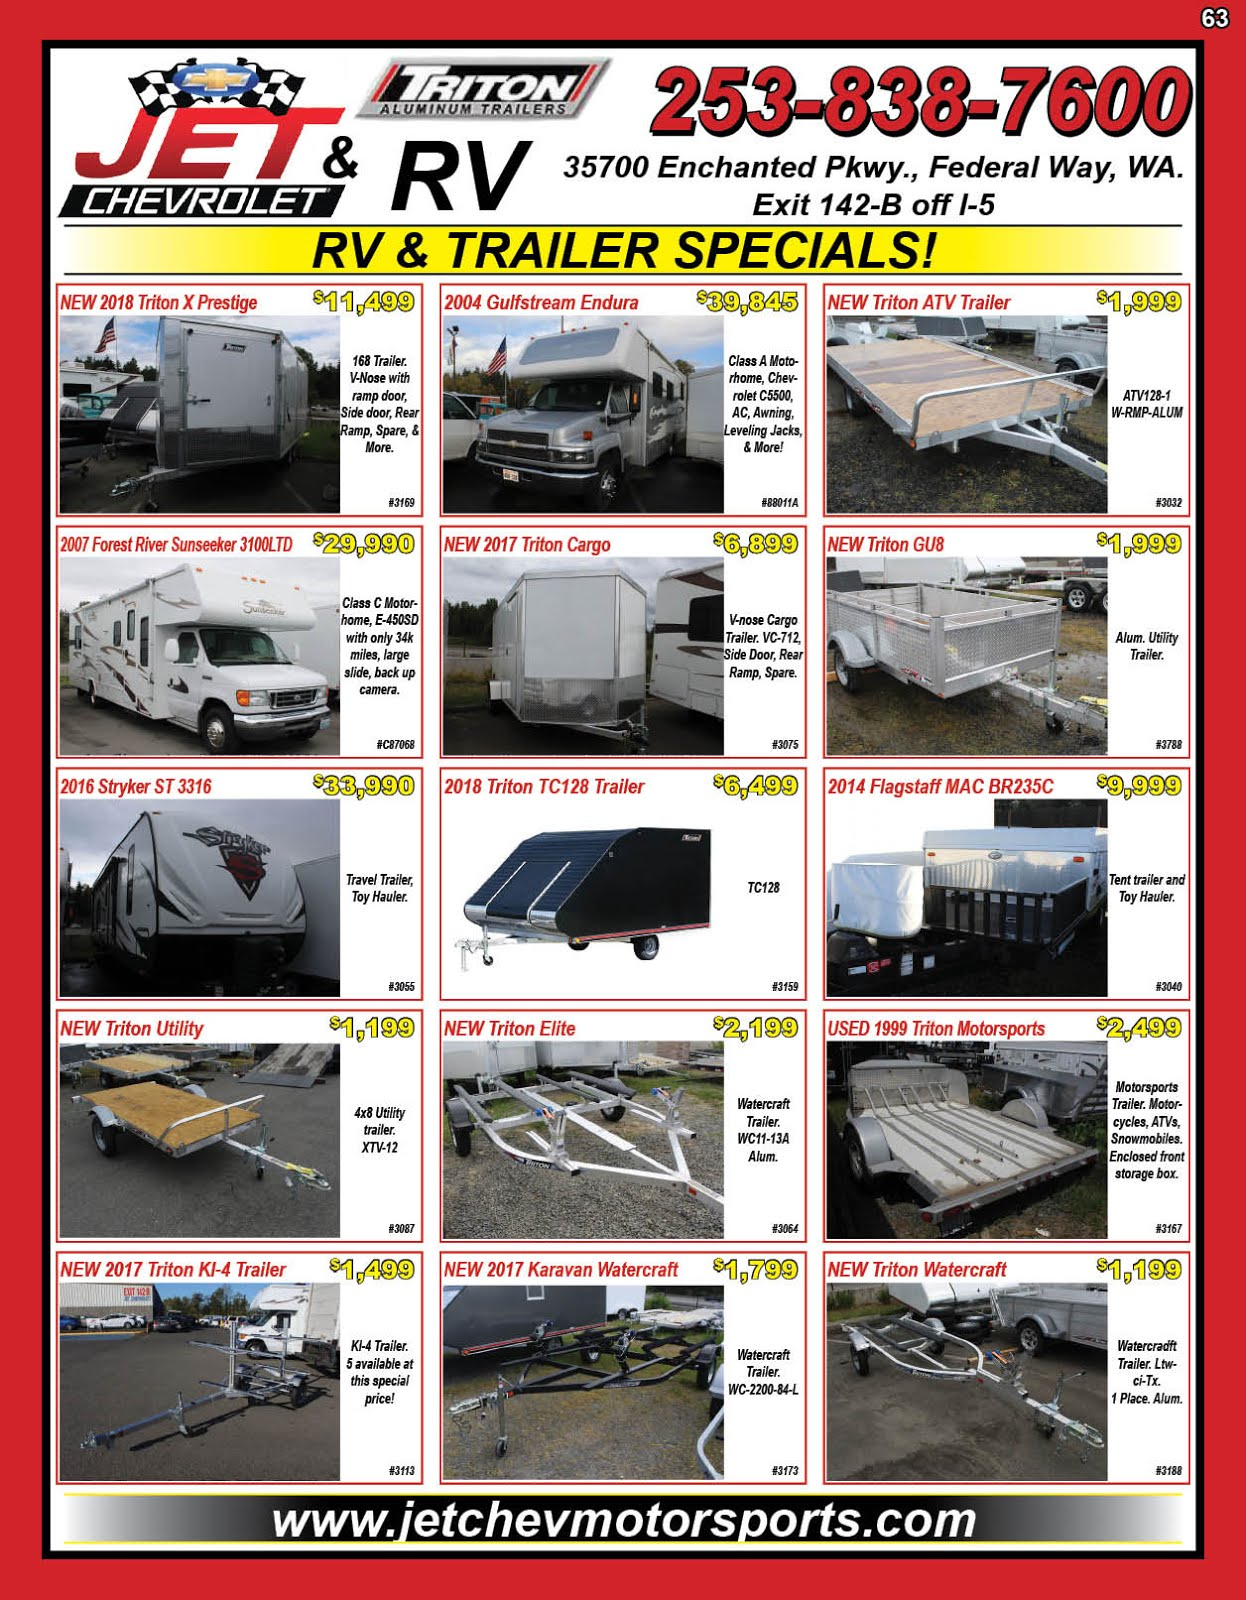 Jet Chevrolet RV & Trailers